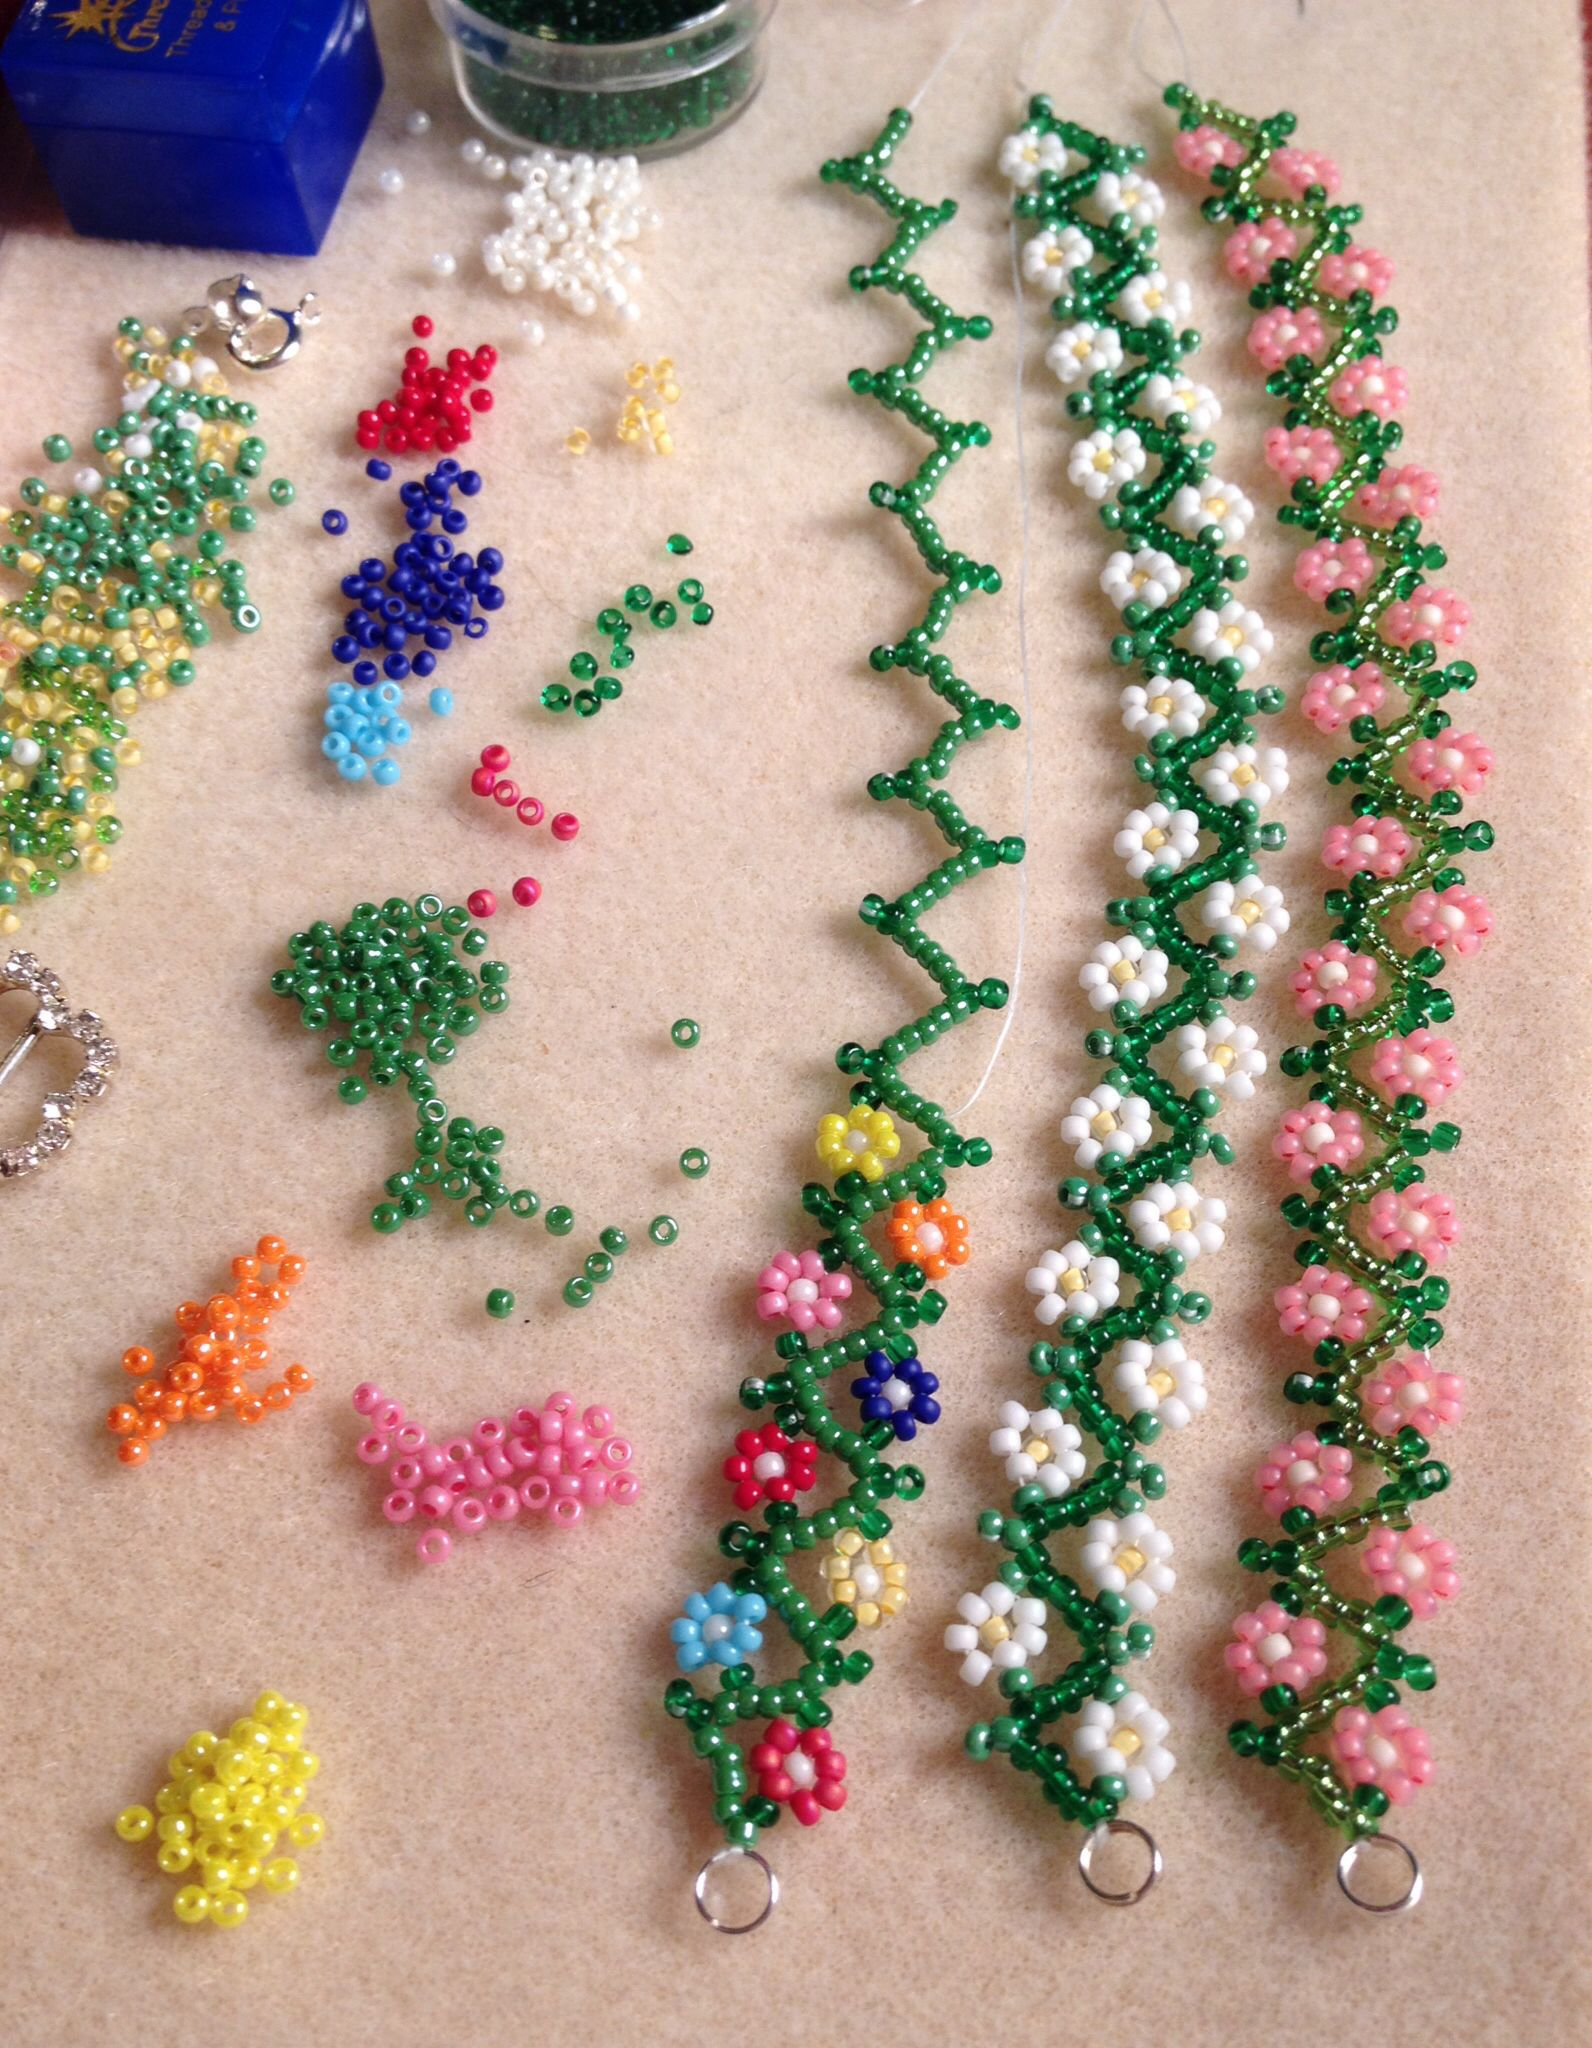 beads and green diy cascade oc bead fantaisie images sharon for really like necklaces bracelet de necklace on jewelry the pinterest jewellery best perles anneau verre beading of turquoise basiacollection seed this design collier making i glass et